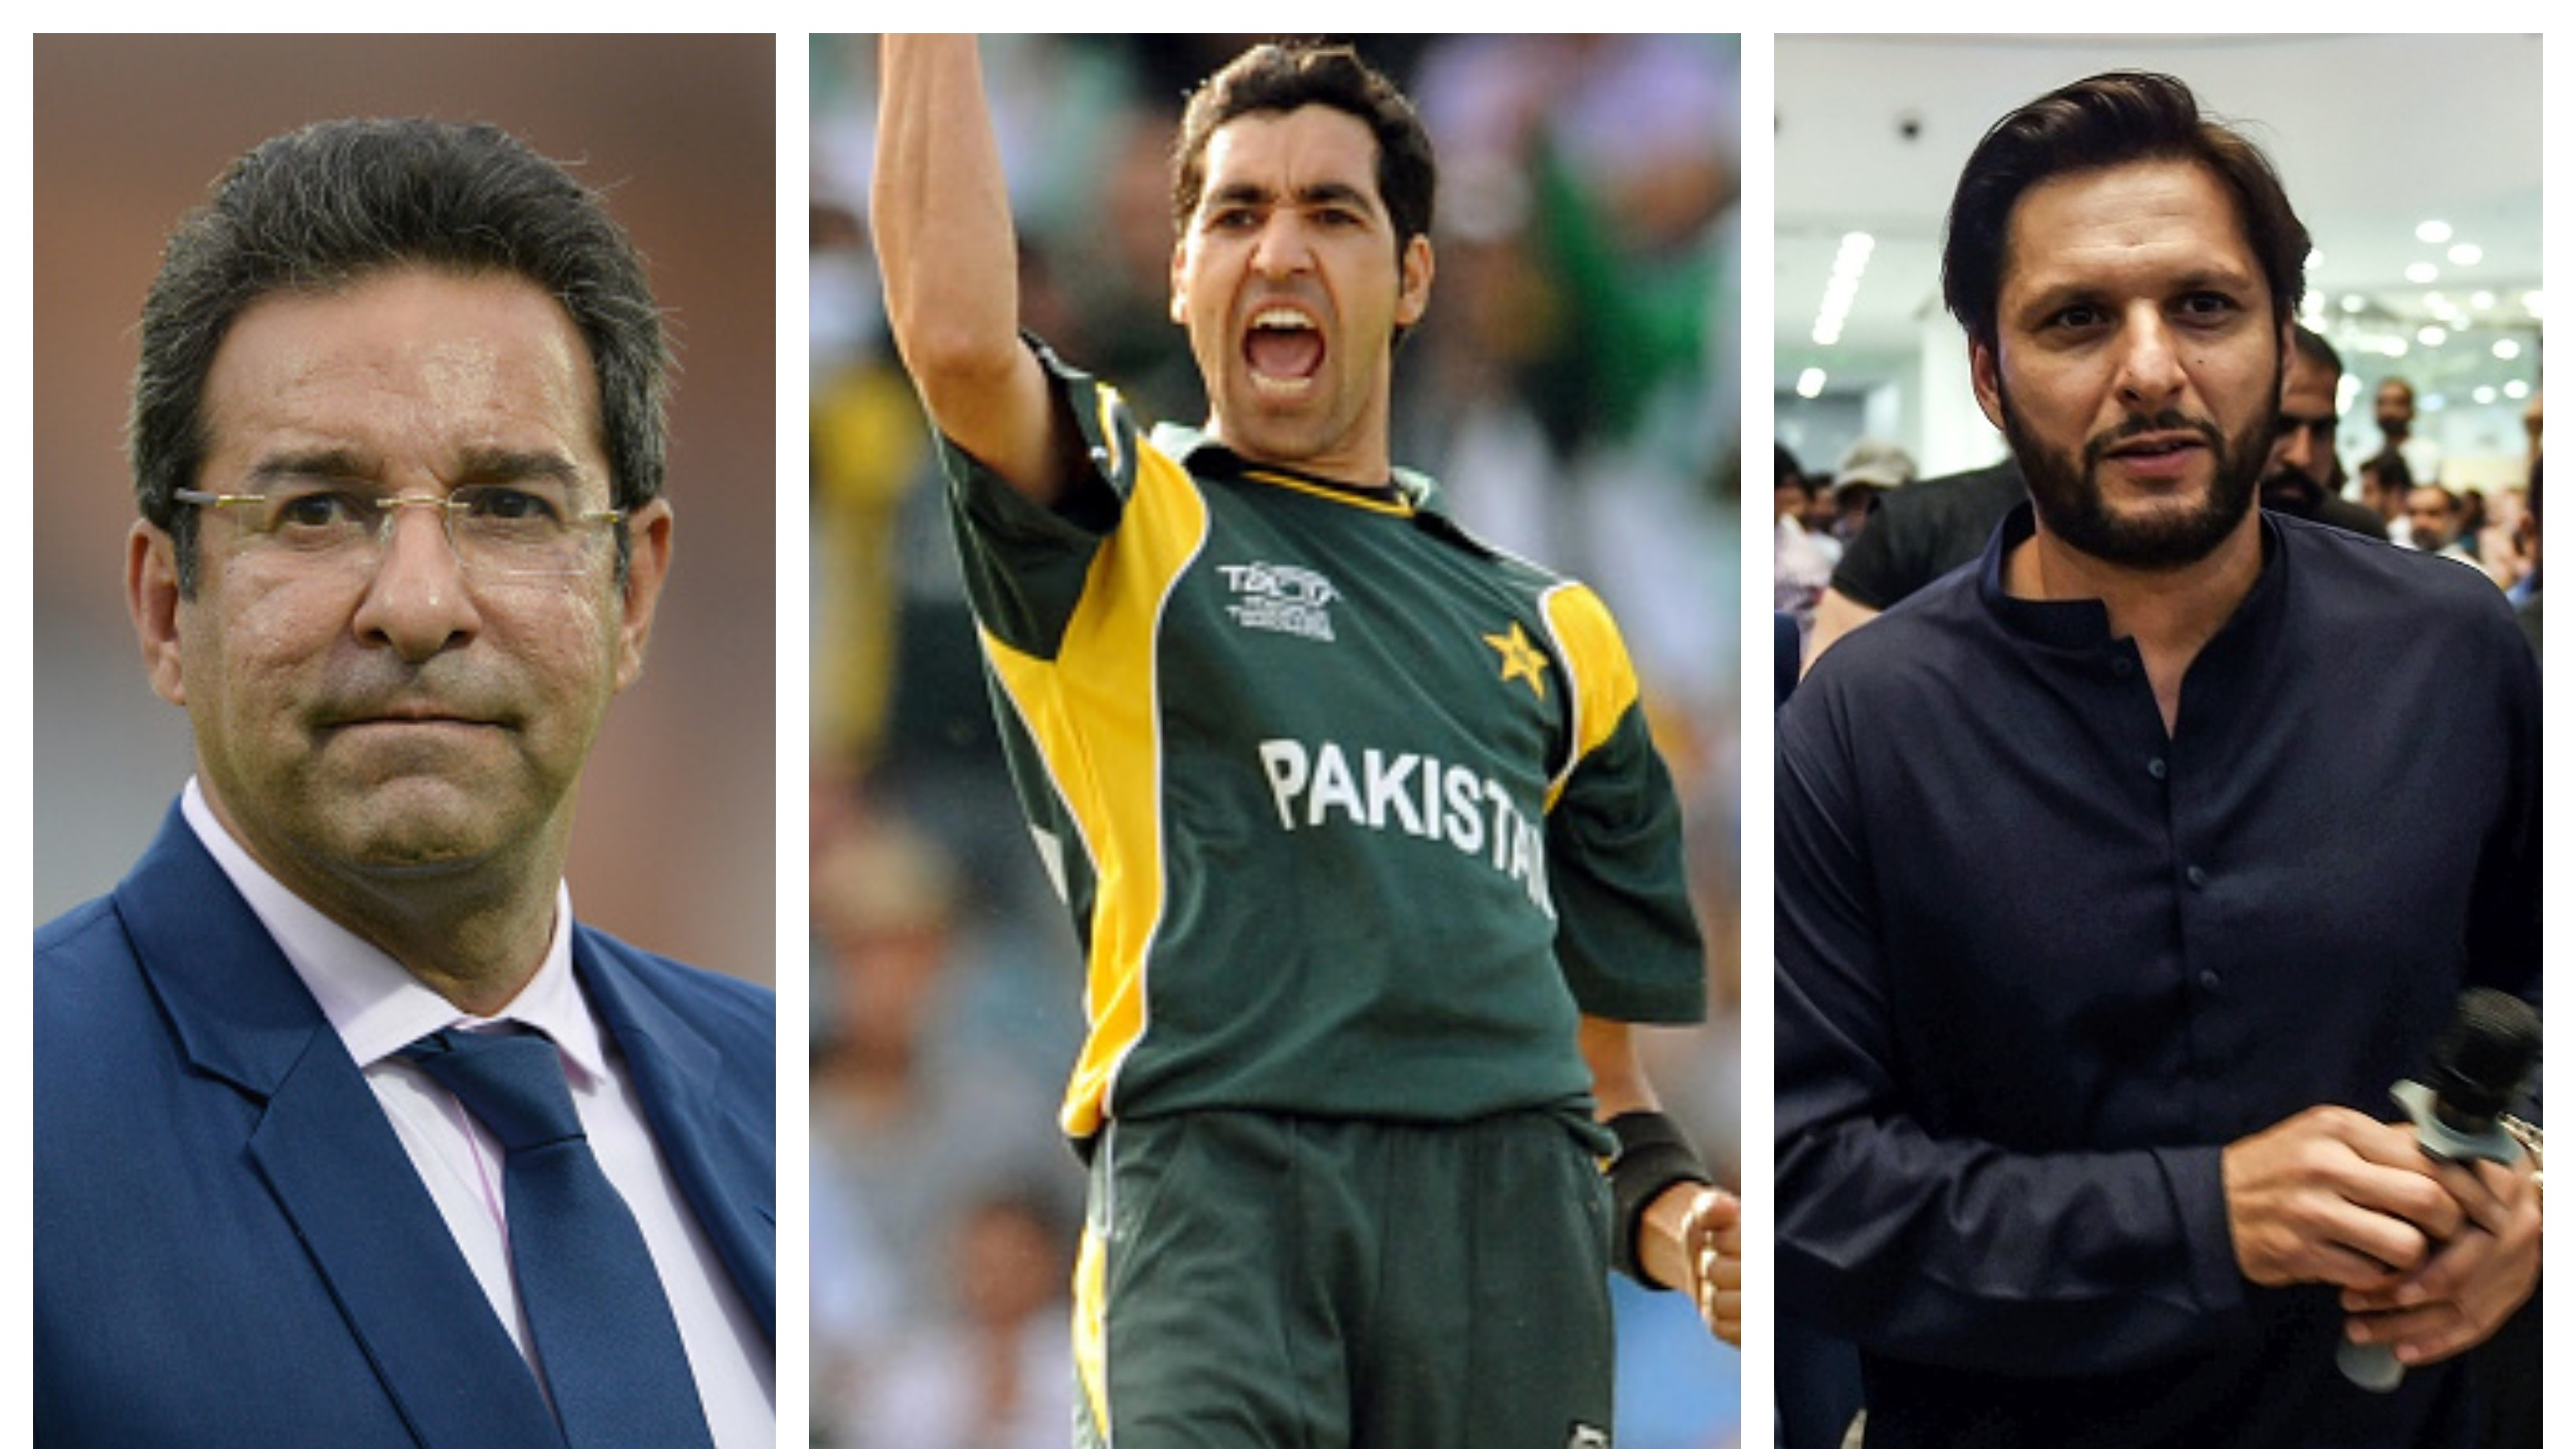 Pakistan cricket fraternity hails Umar Gul as he retires from professional cricket